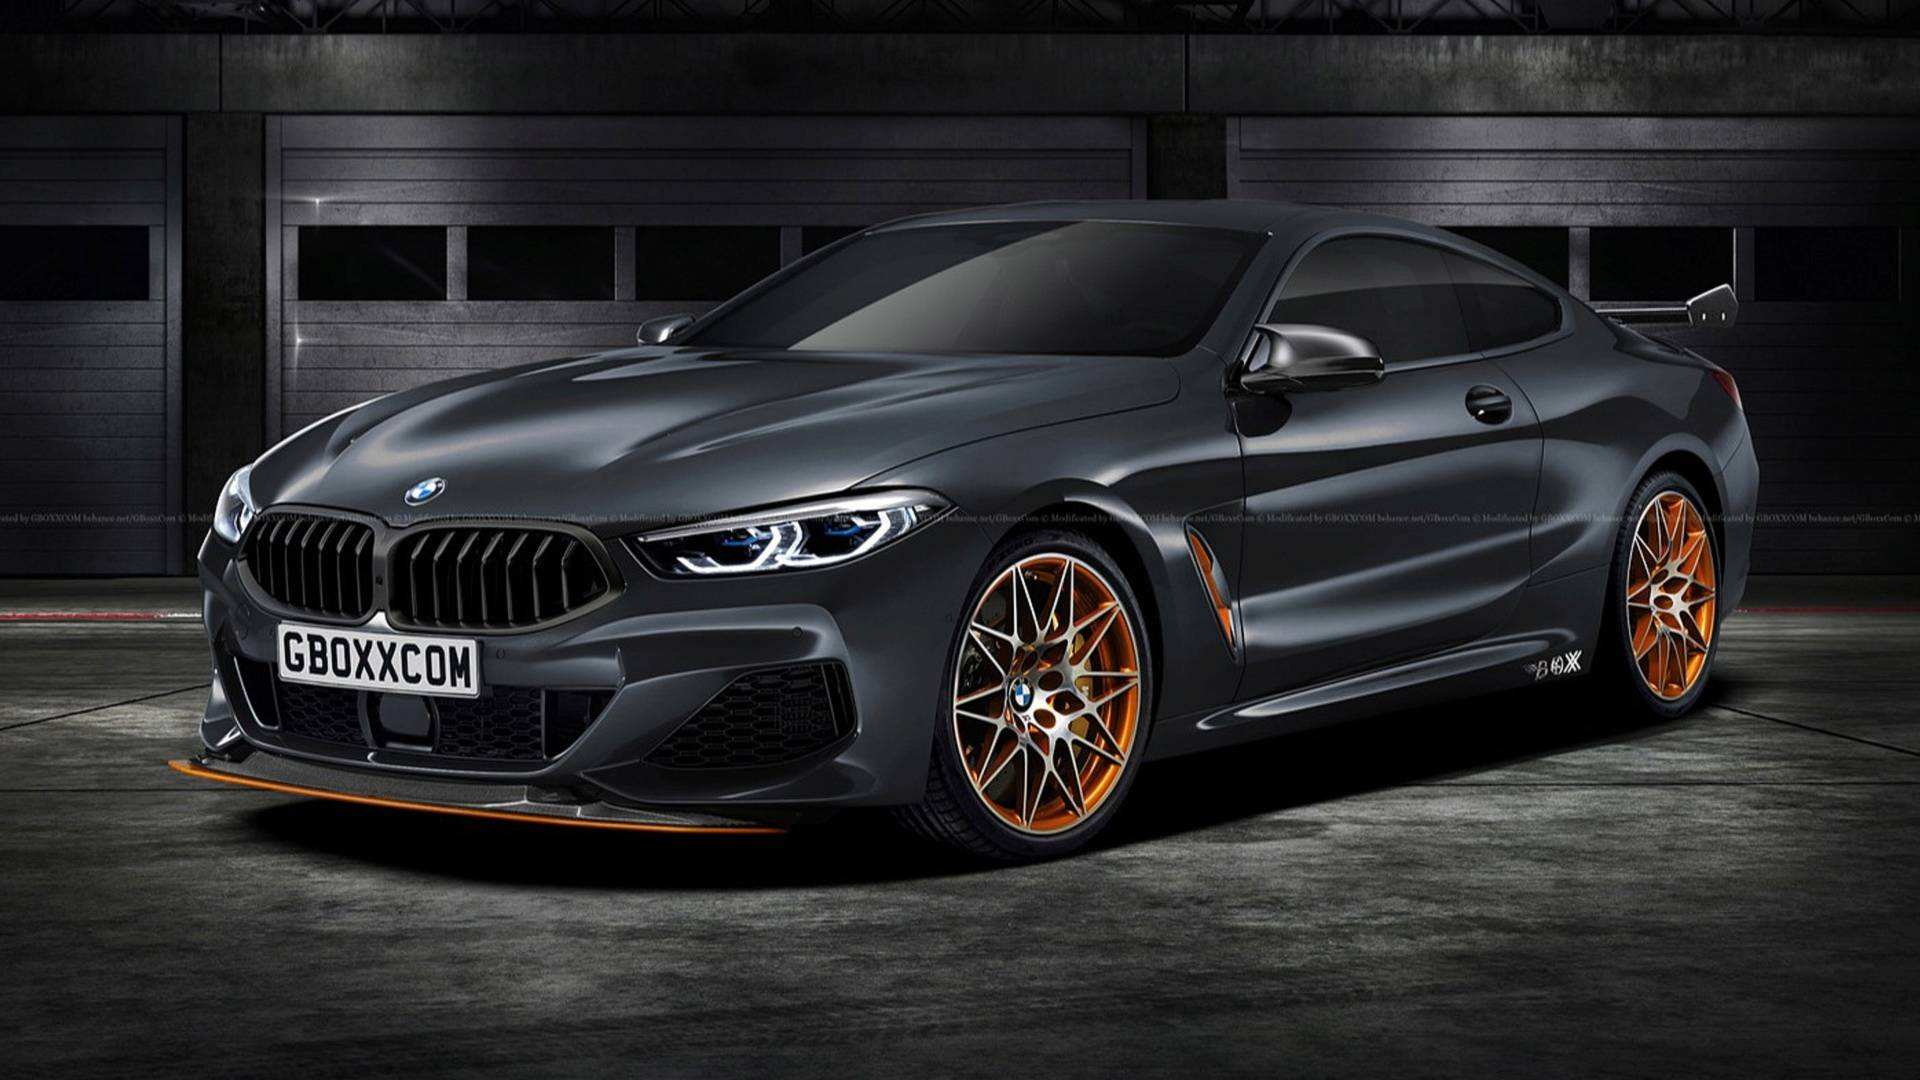 77 Best Review Best Bmw Upcoming Cars 2019 Rumors New Review with Best Bmw Upcoming Cars 2019 Rumors